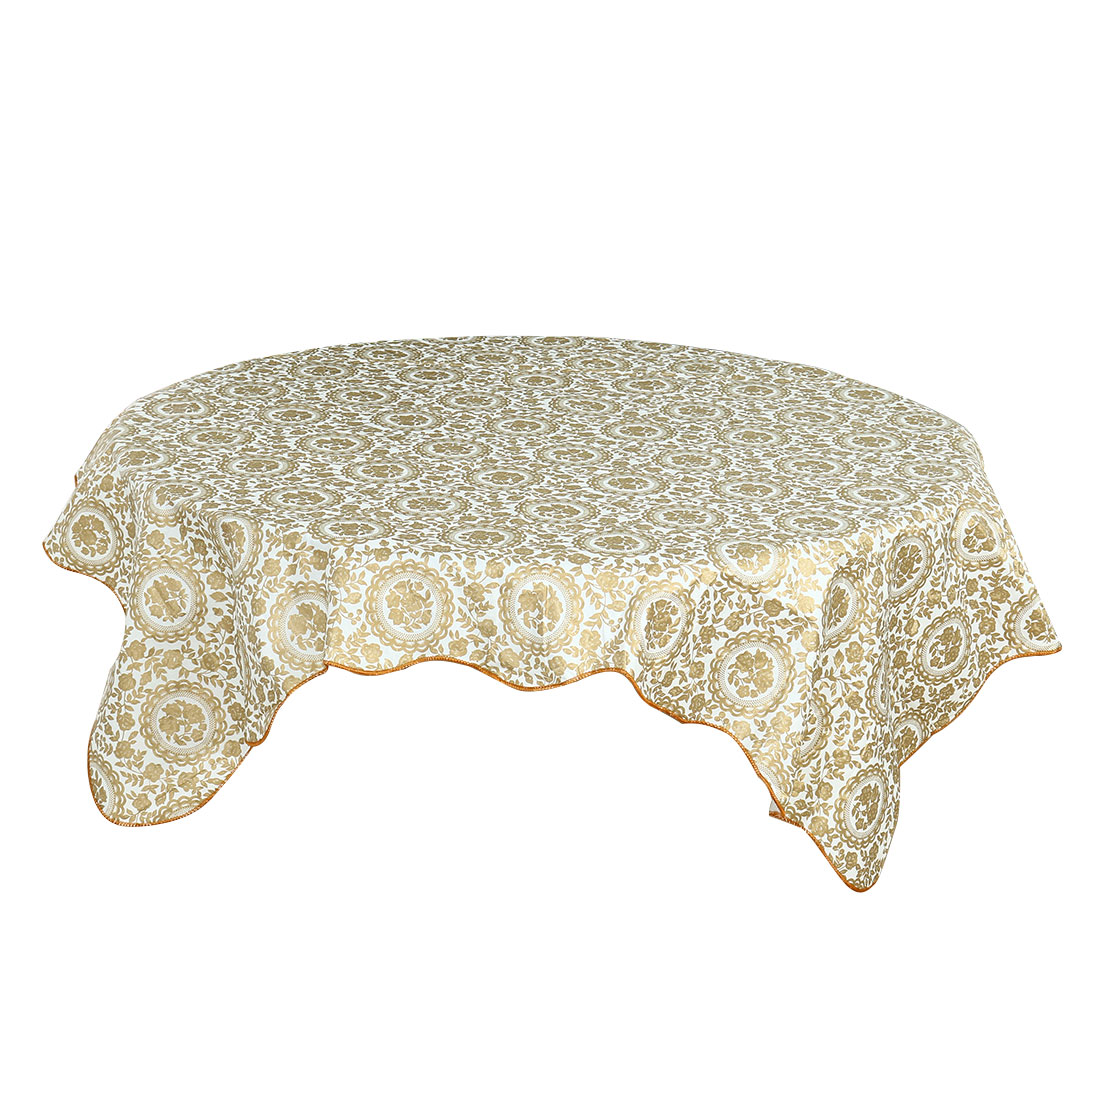 """PVC Tablecloth for Rectangular Table 53"""" x 53"""" Gold Tone Flower Oil Resistant - image 8 of 8"""